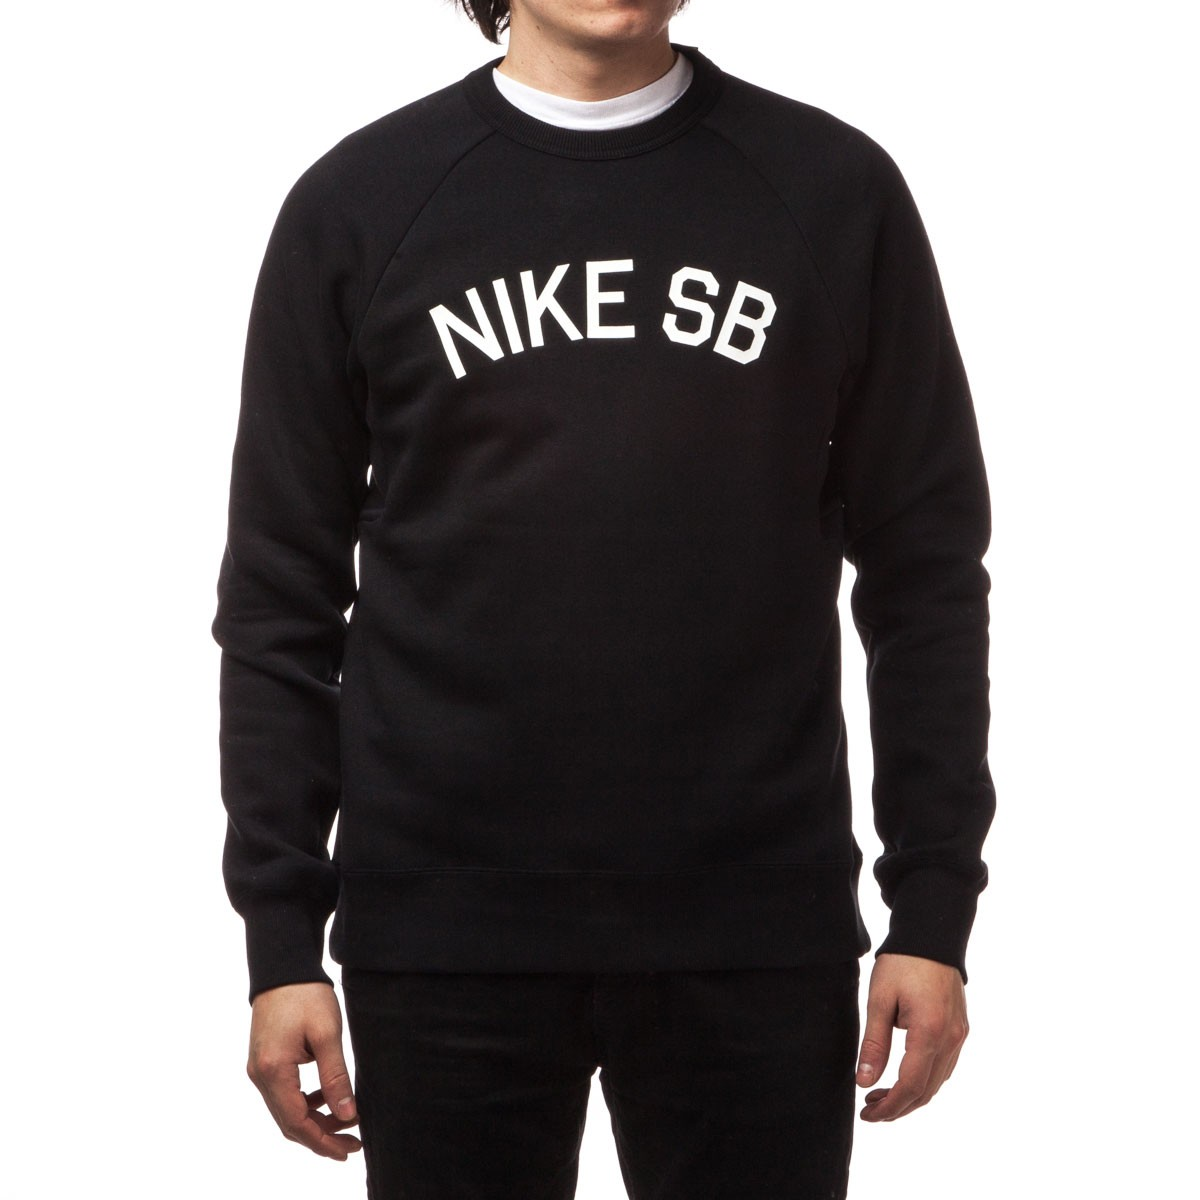 Nike Sb Icon Coaches Fleece Crew Sweatshirt Black White